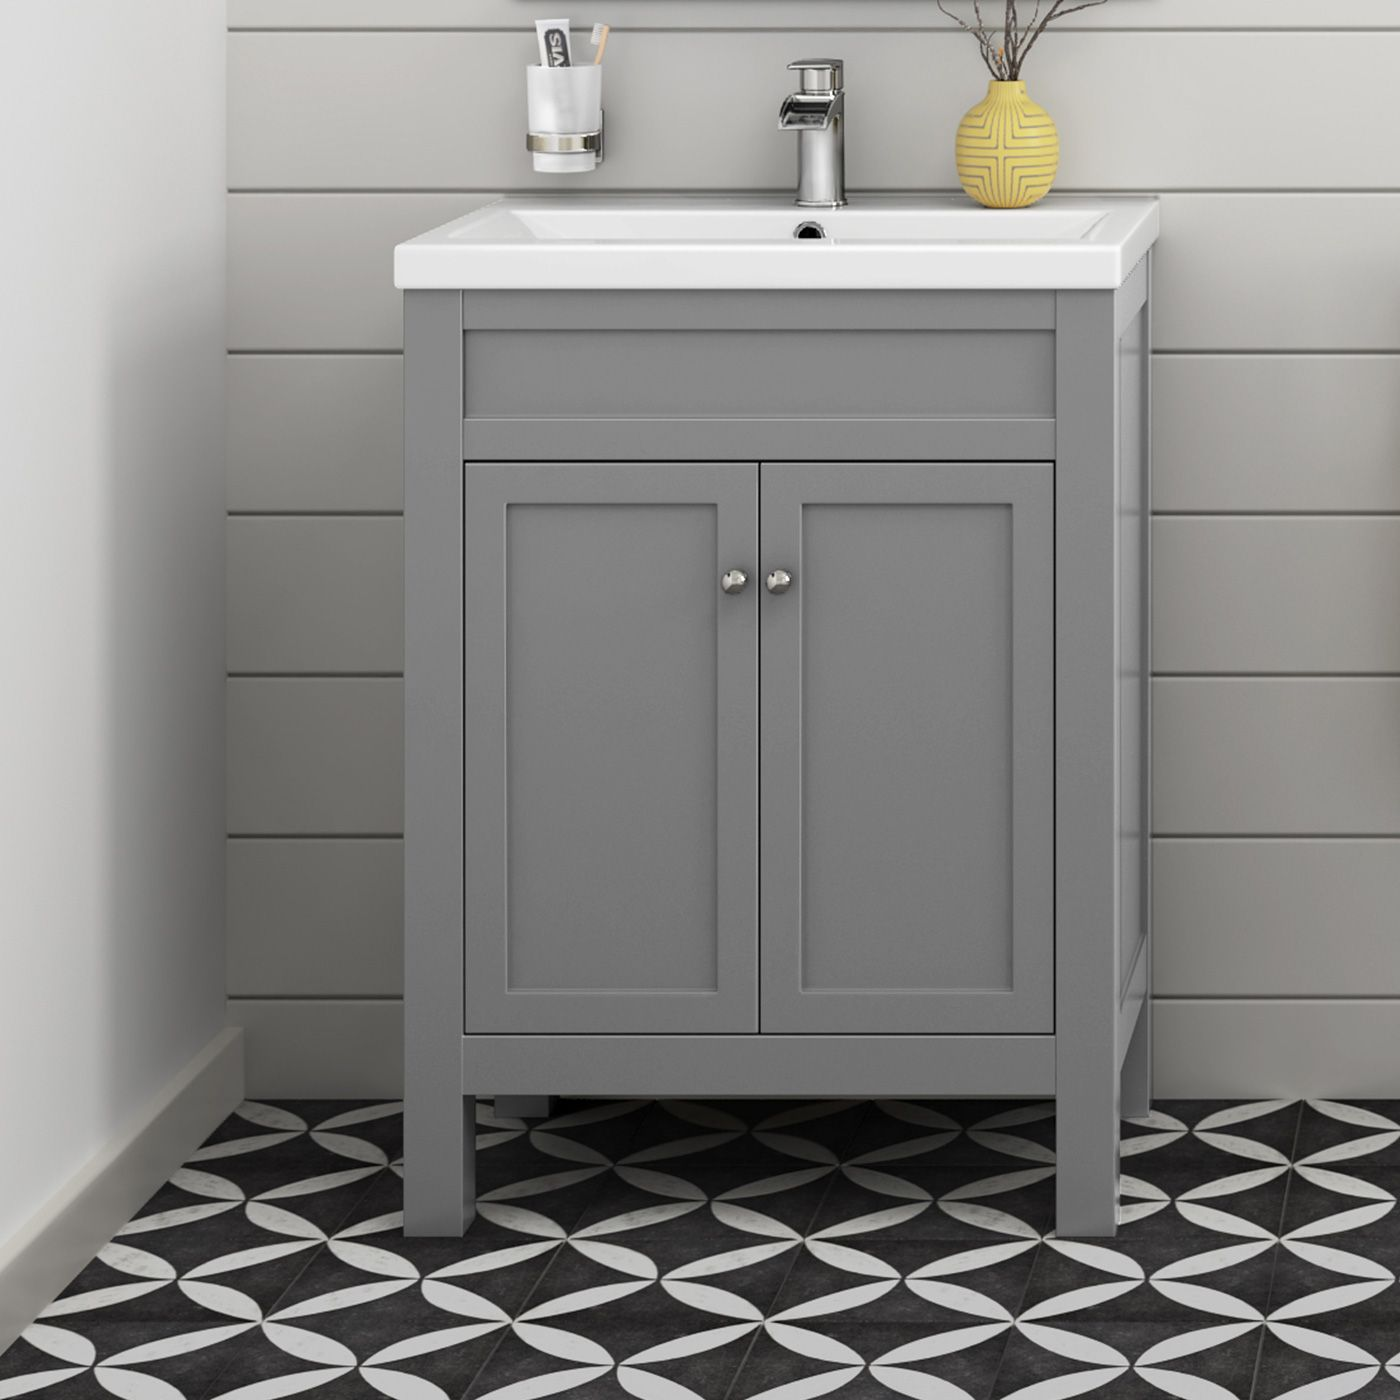 Bathroom Sinks Melbourne 600mm melbourne earl grey double door floor standing vanity unit